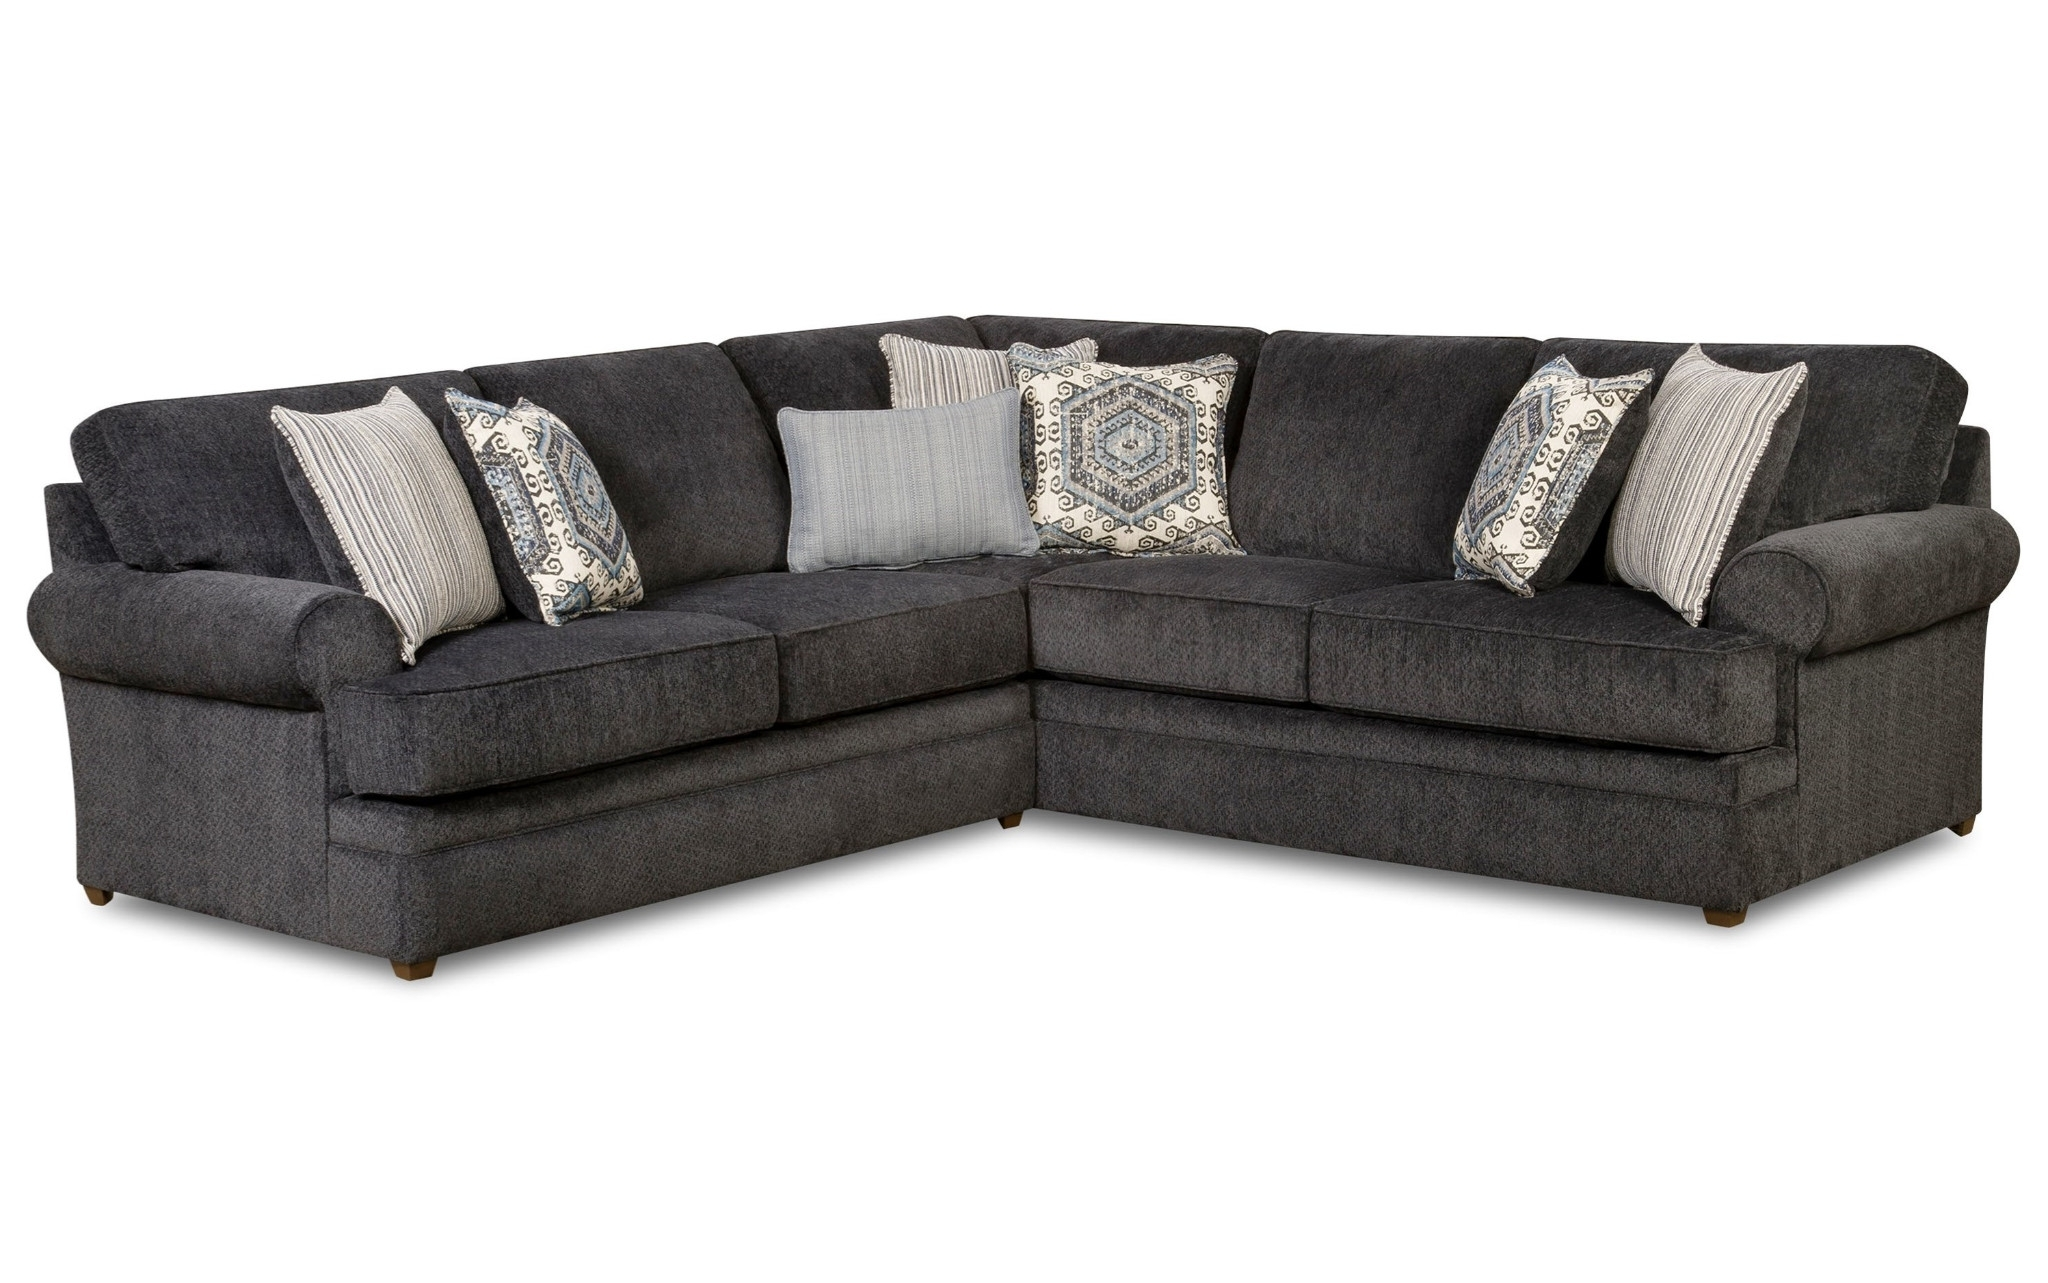 Bellamy Slate 2 Piece Sectional Beauty Restsimmons $899.00 Within Latest Greensboro Nc Sectional Sofas (Gallery 16 of 20)